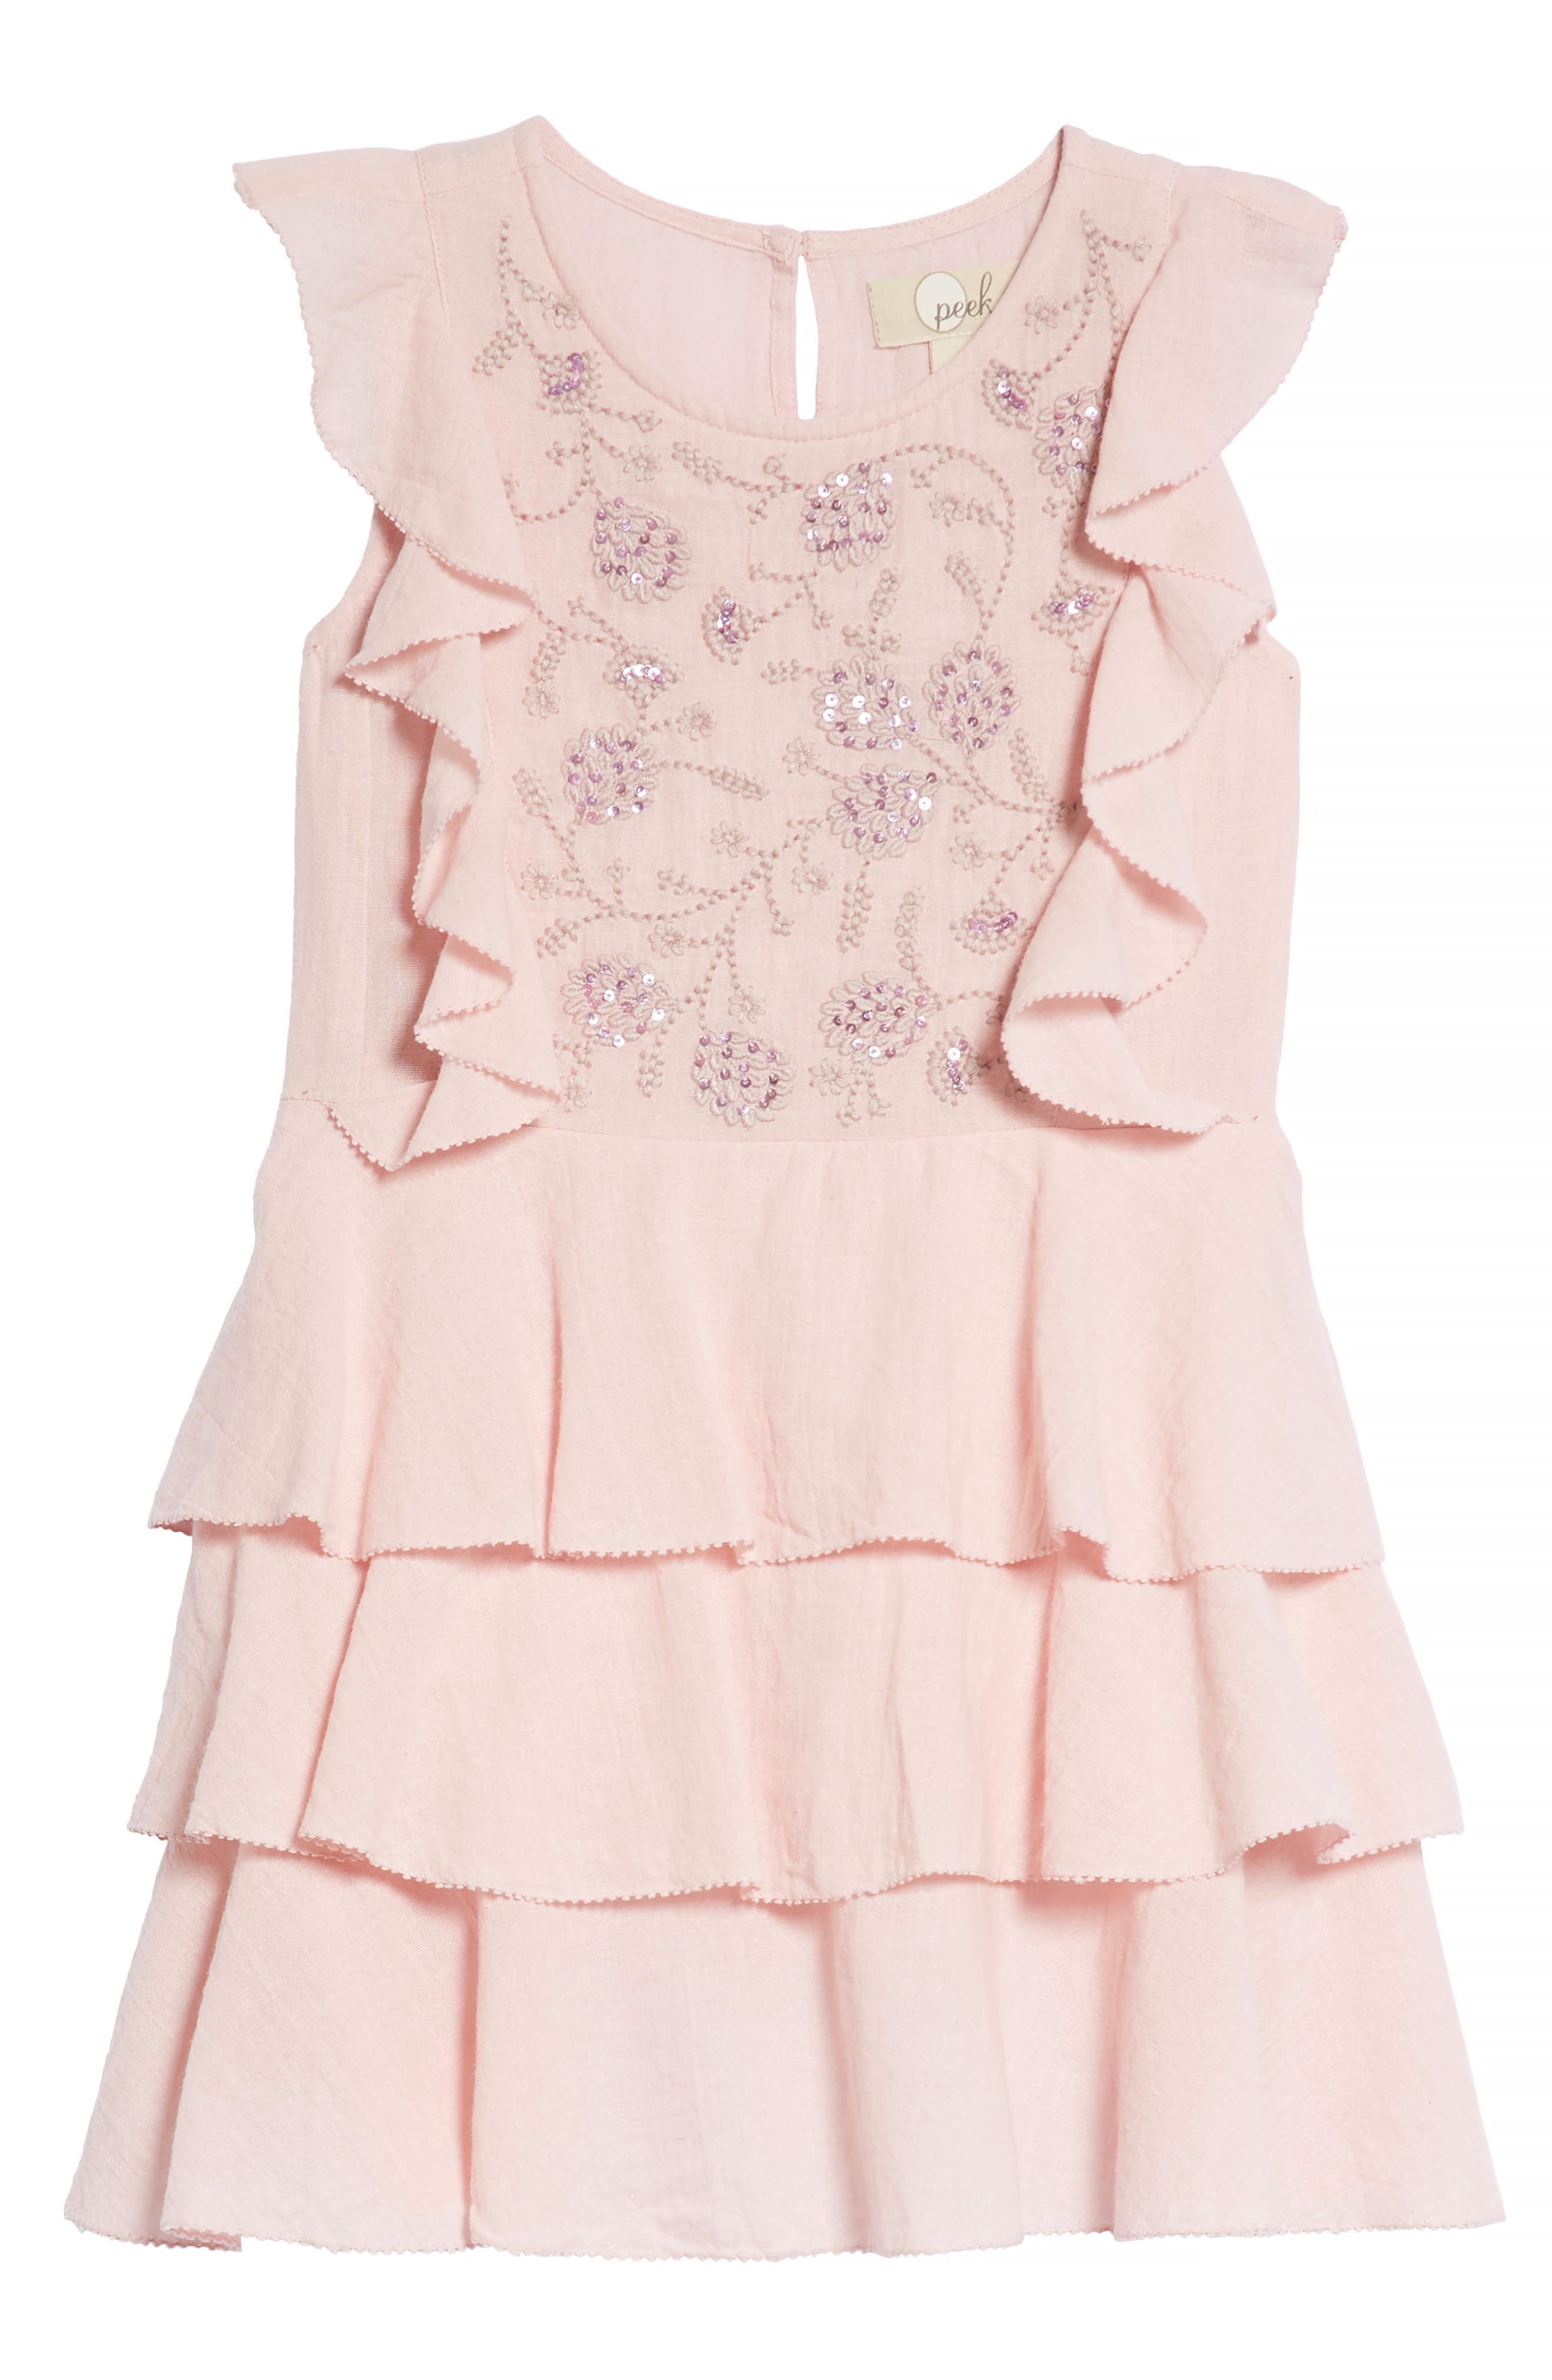 Madeline Tiered Dress,                             Main thumbnail 1, color,